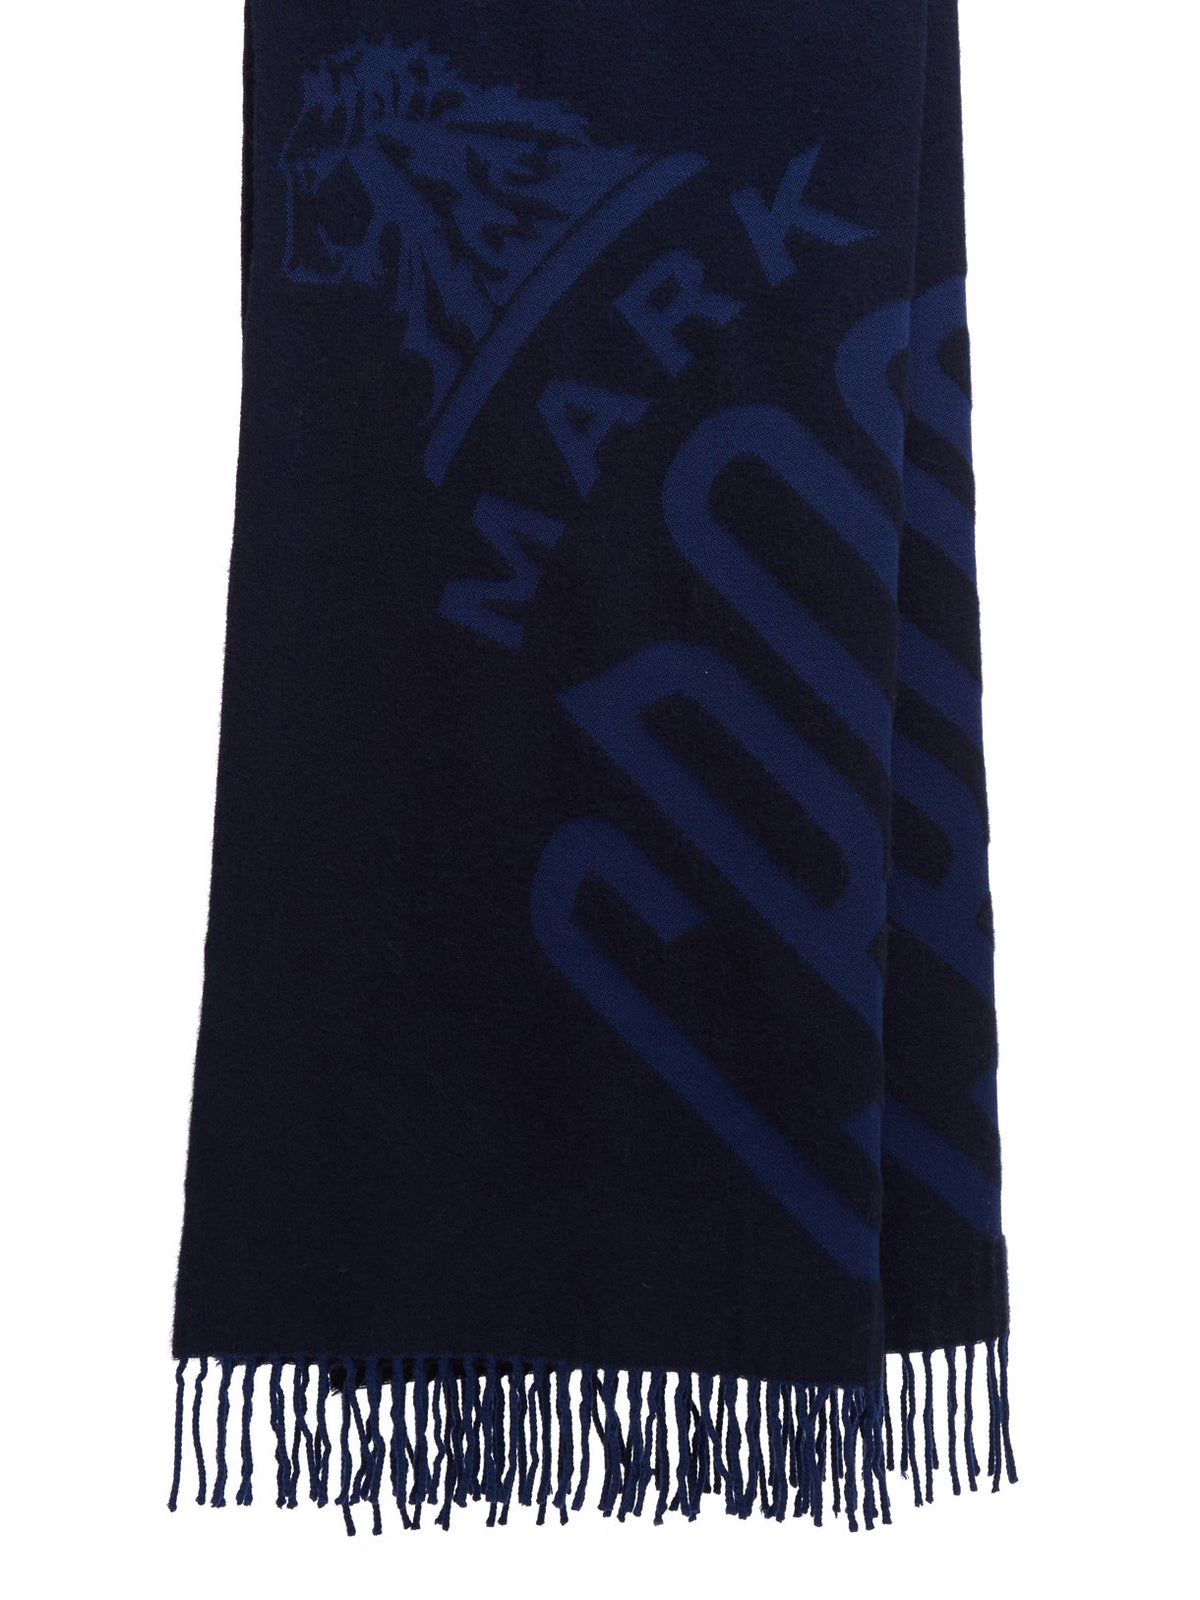 Mark Cross Hanover Wool Scarf Navy / Bright Blue Front